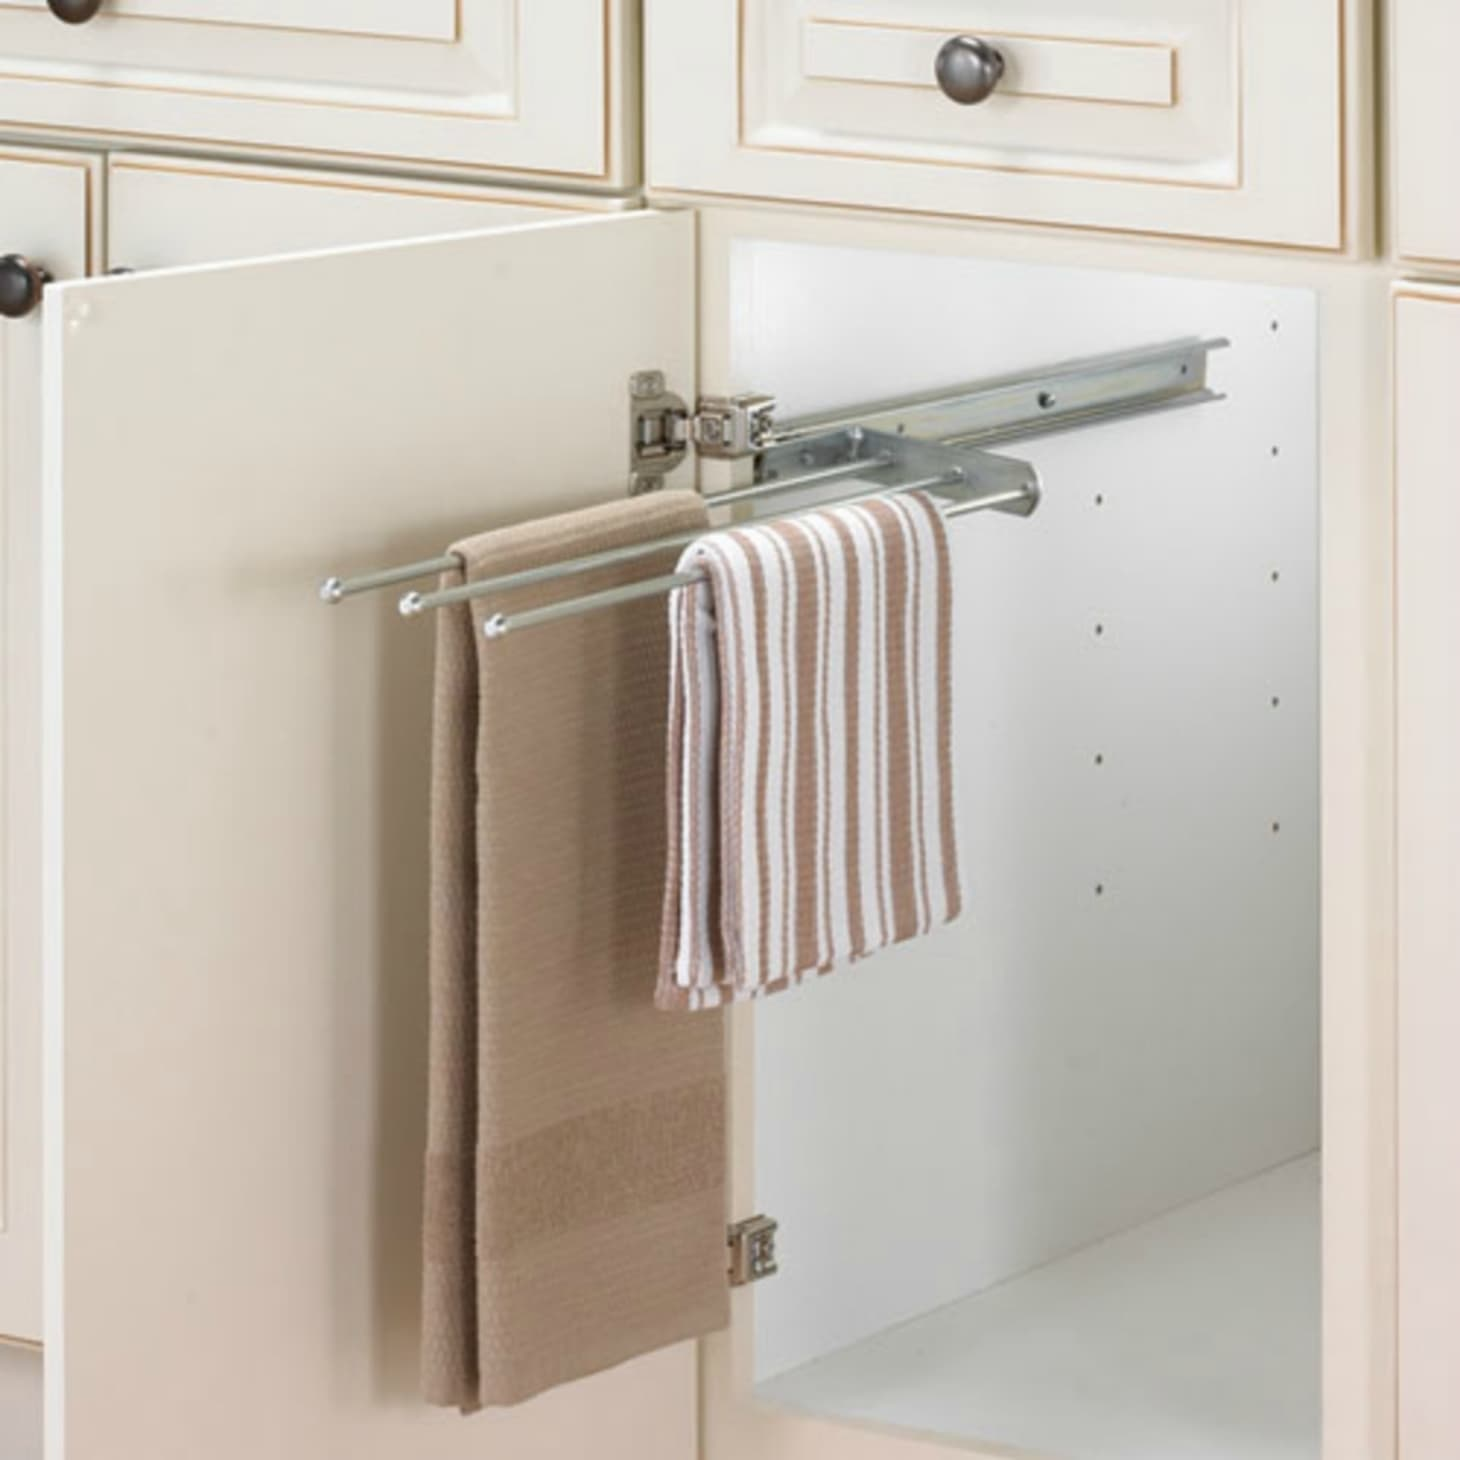 Ideas for Hanging & Storing Towels in a Small Bathroom ... on hang bath towels, hang pool towels, hang kitchen curtains,